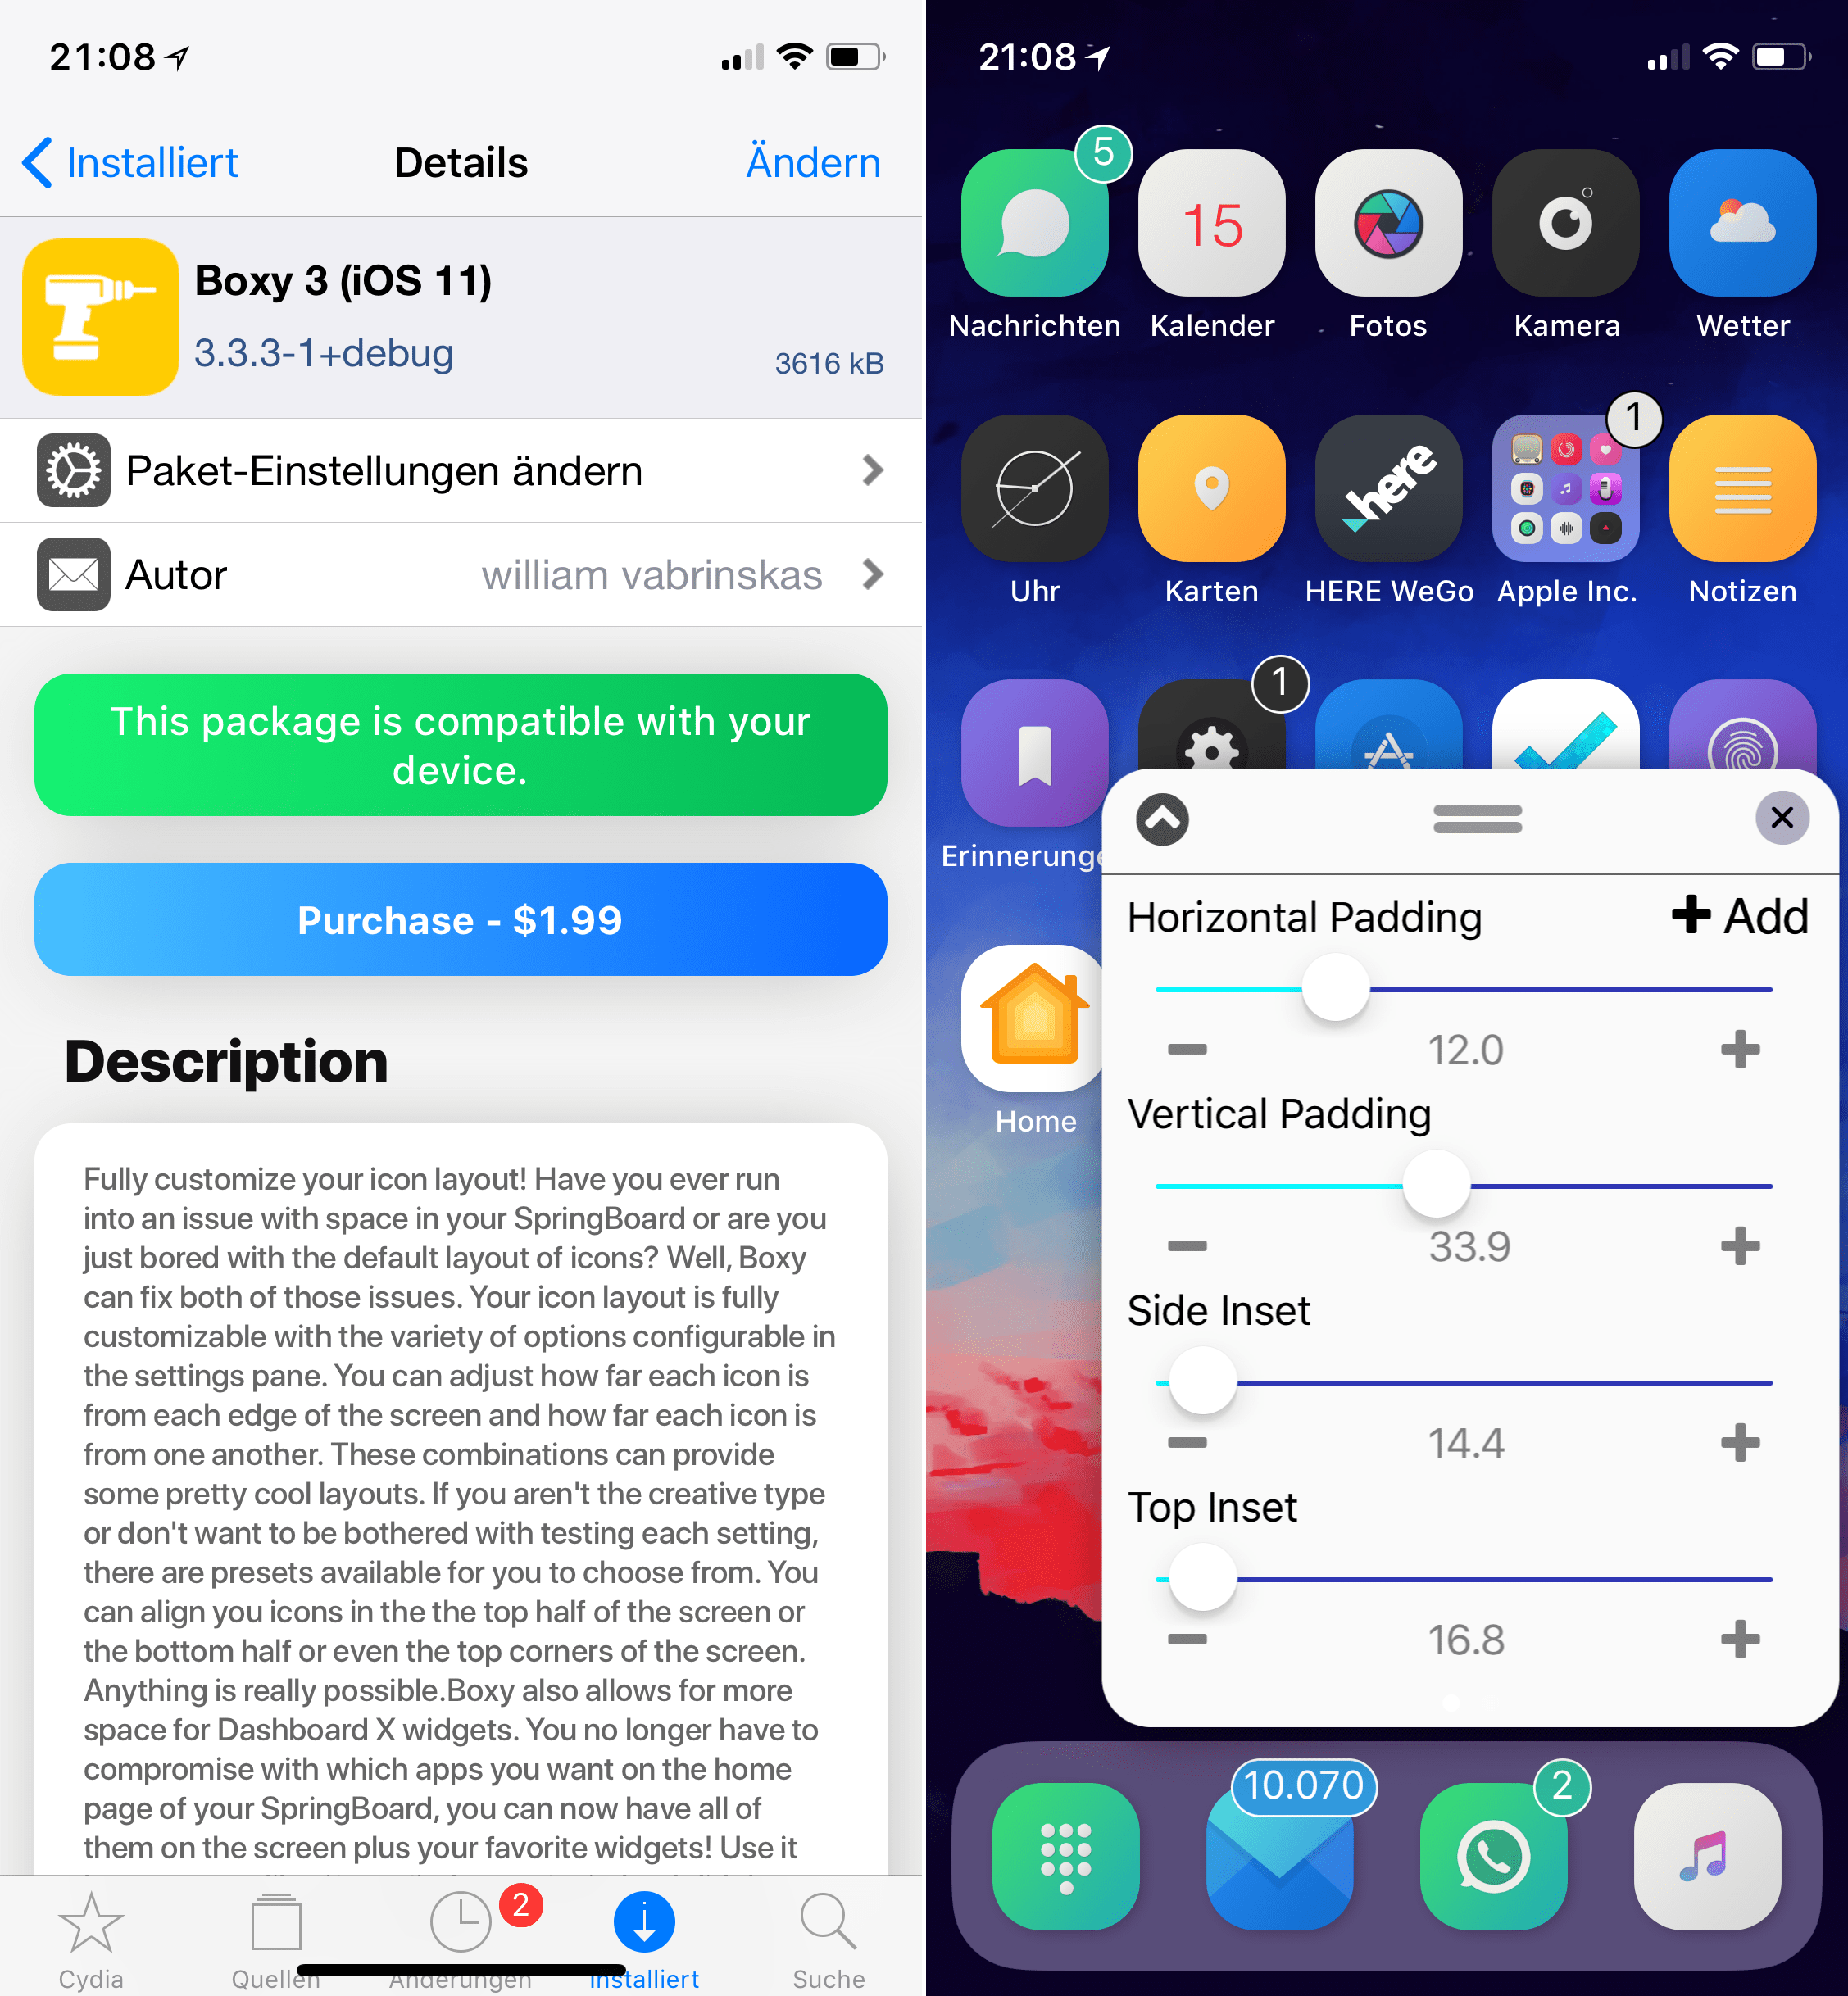 Homescreen Layout bearbeiten mit Boxy 3, Cydia, Tweak, Top, Hack4Life, Fabian Geissler